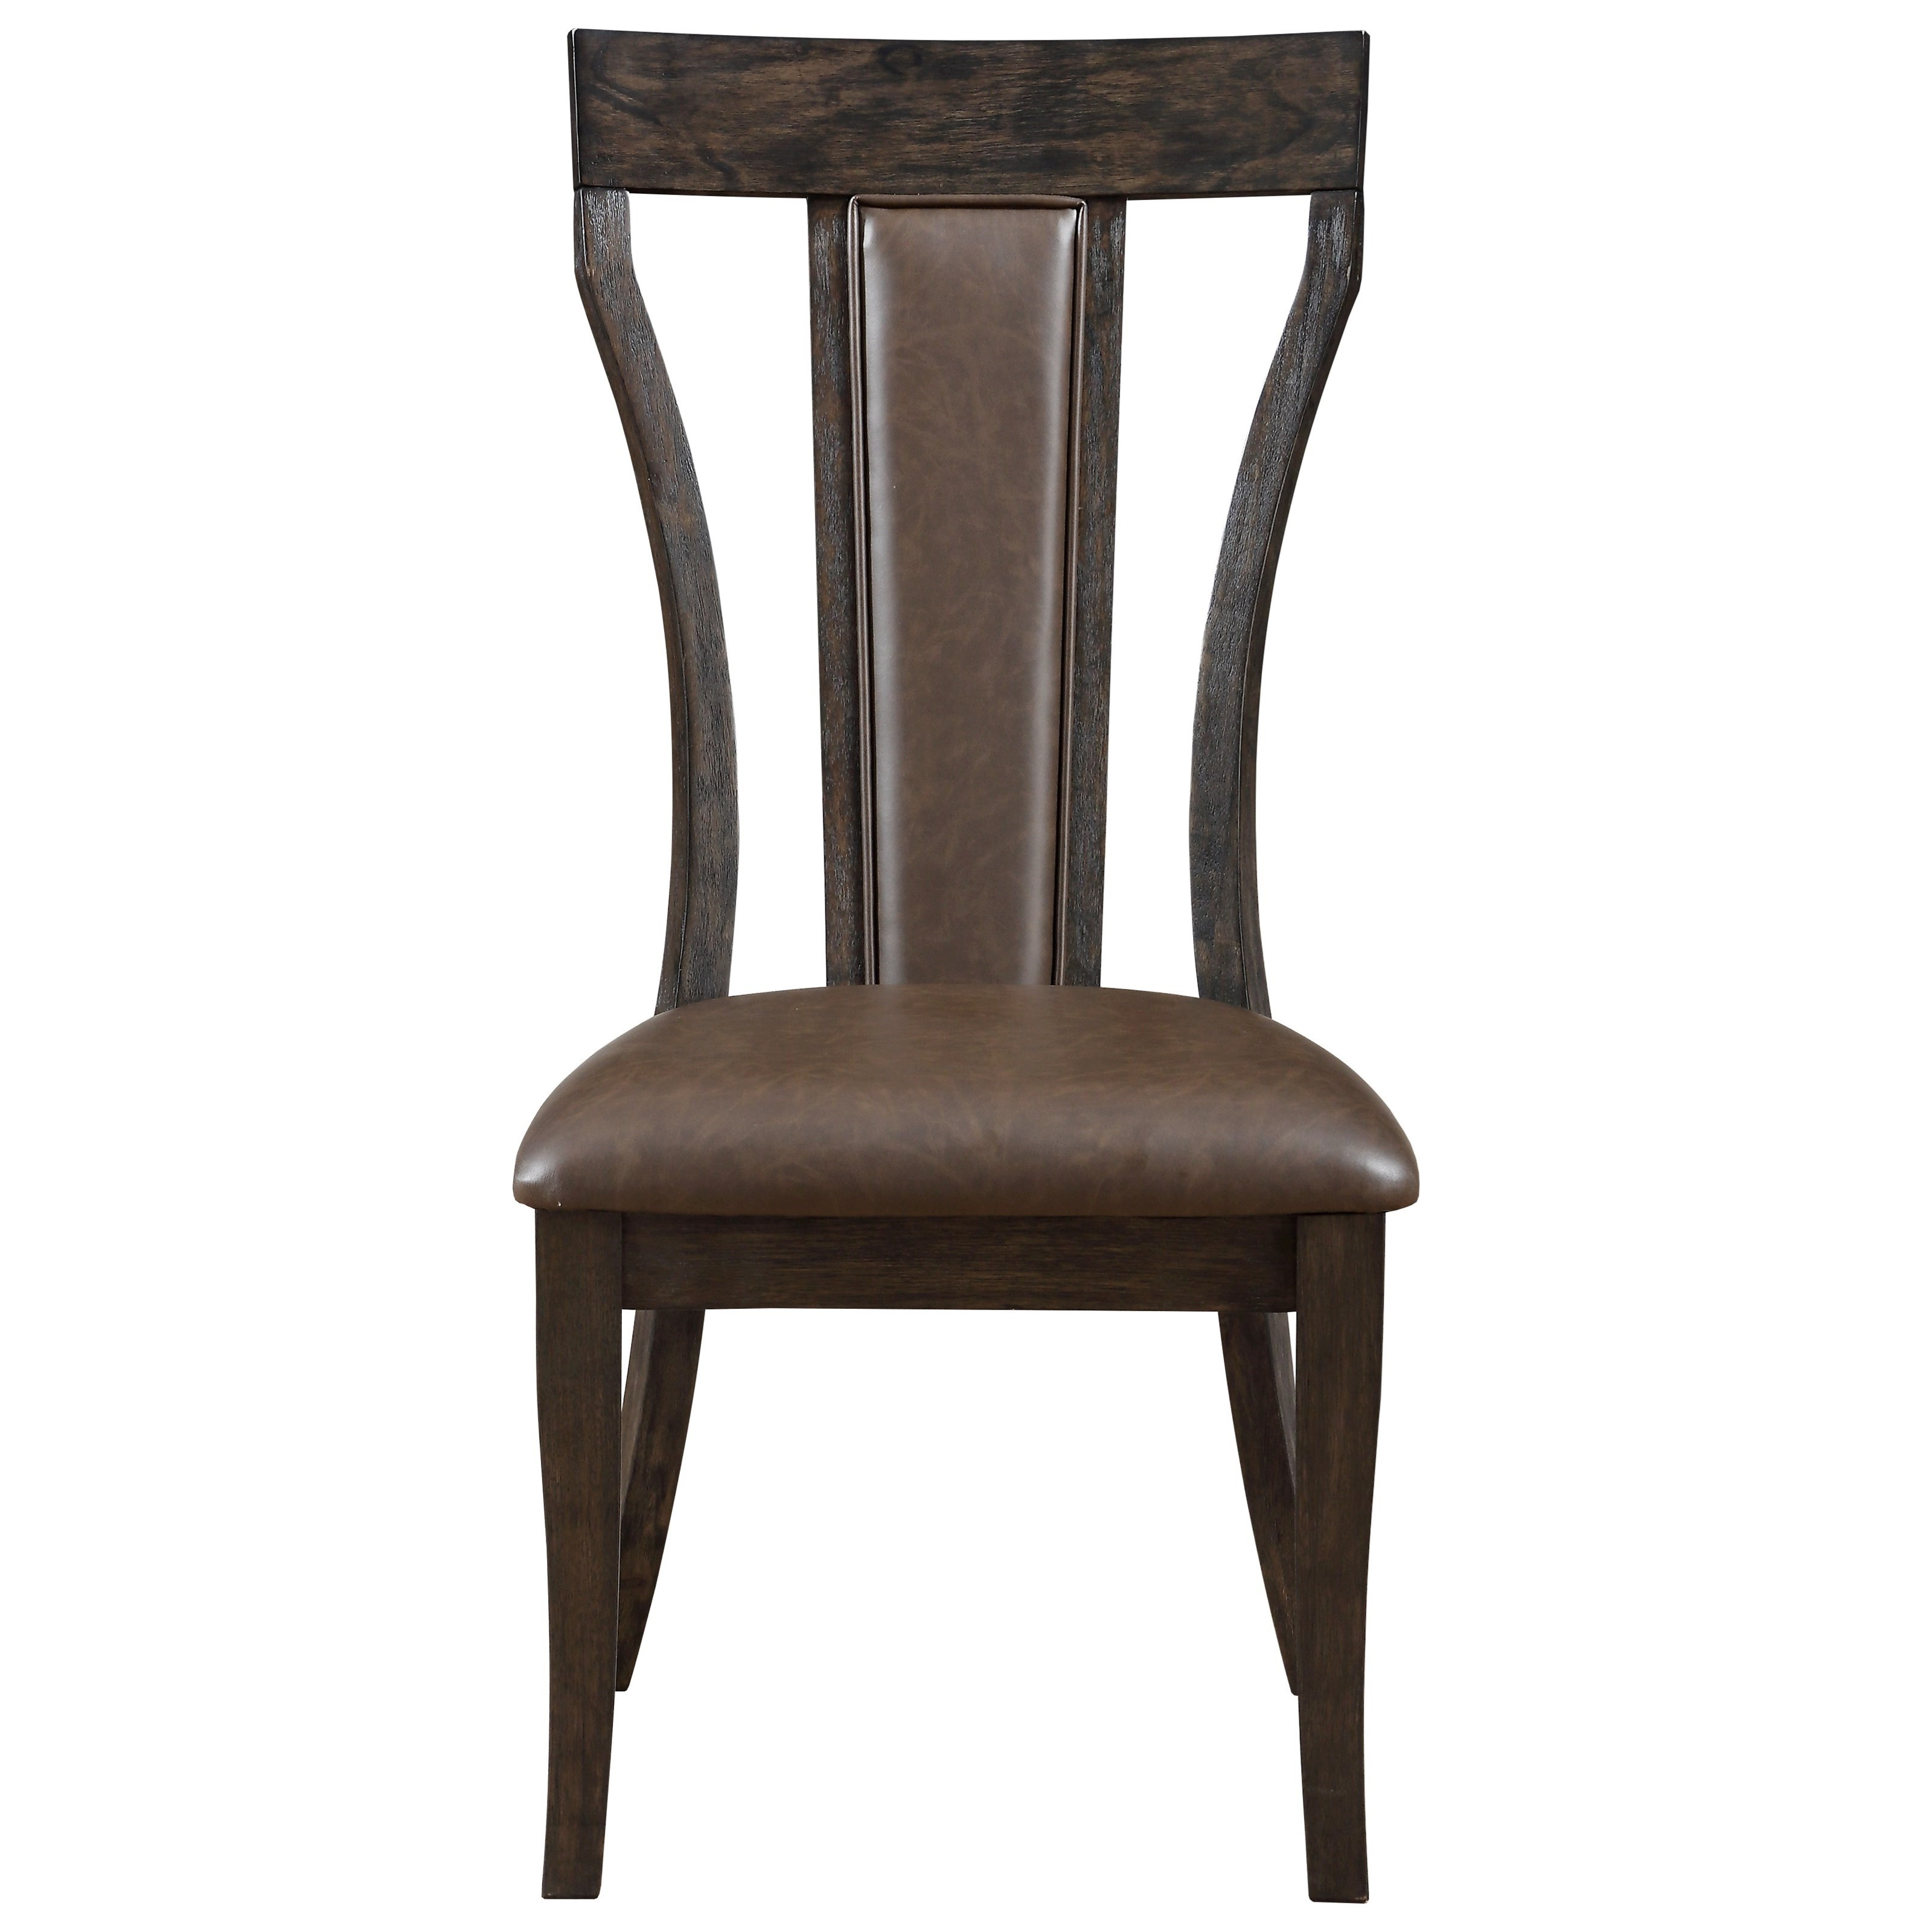 Aubree Dining Chair by New Classic at Carolina Direct